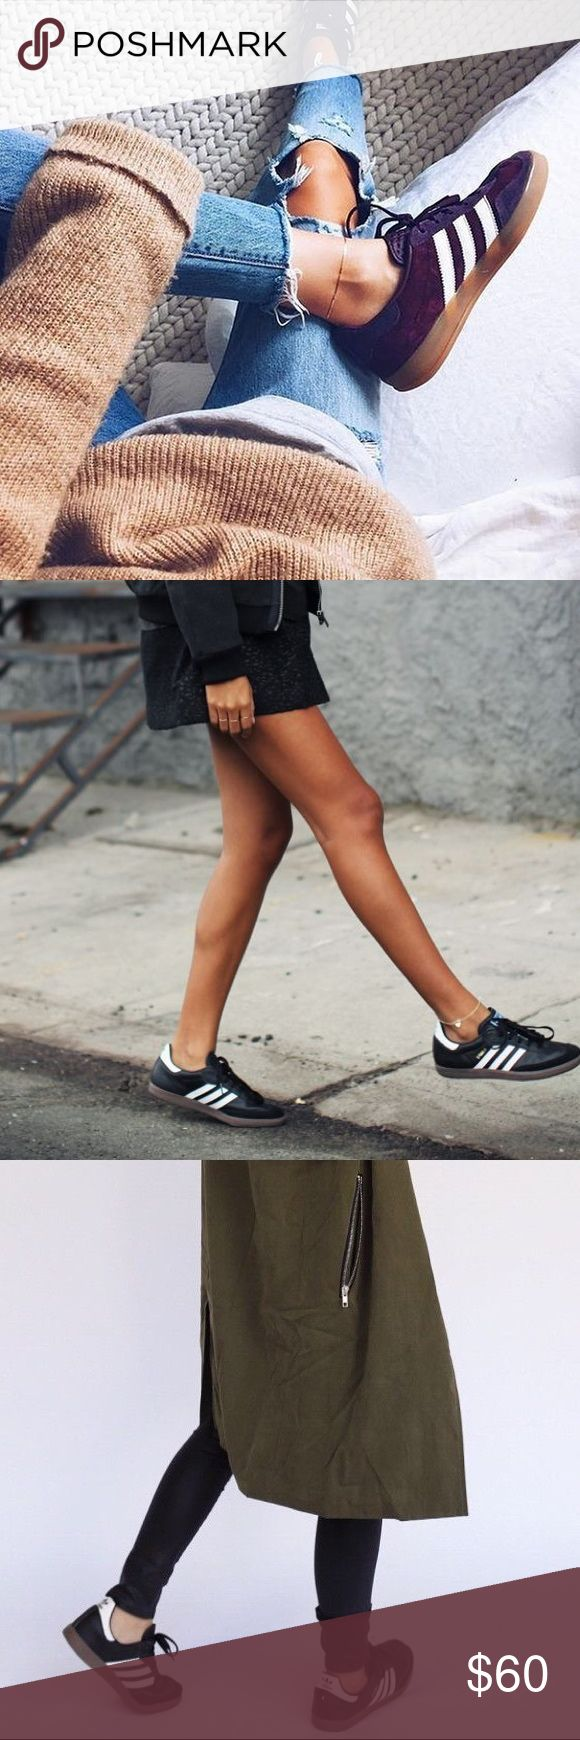 Adidas Samba Sneakers Gently worn only a couple times. Will have minor marks as they are not new, but nothing noticeable. Marked as a Men's size 6. Would best fit Woman's size 7.5-8. Tags: LF, Urban Outfitters, Ragged Priest. Adidas Shoes Sneakers